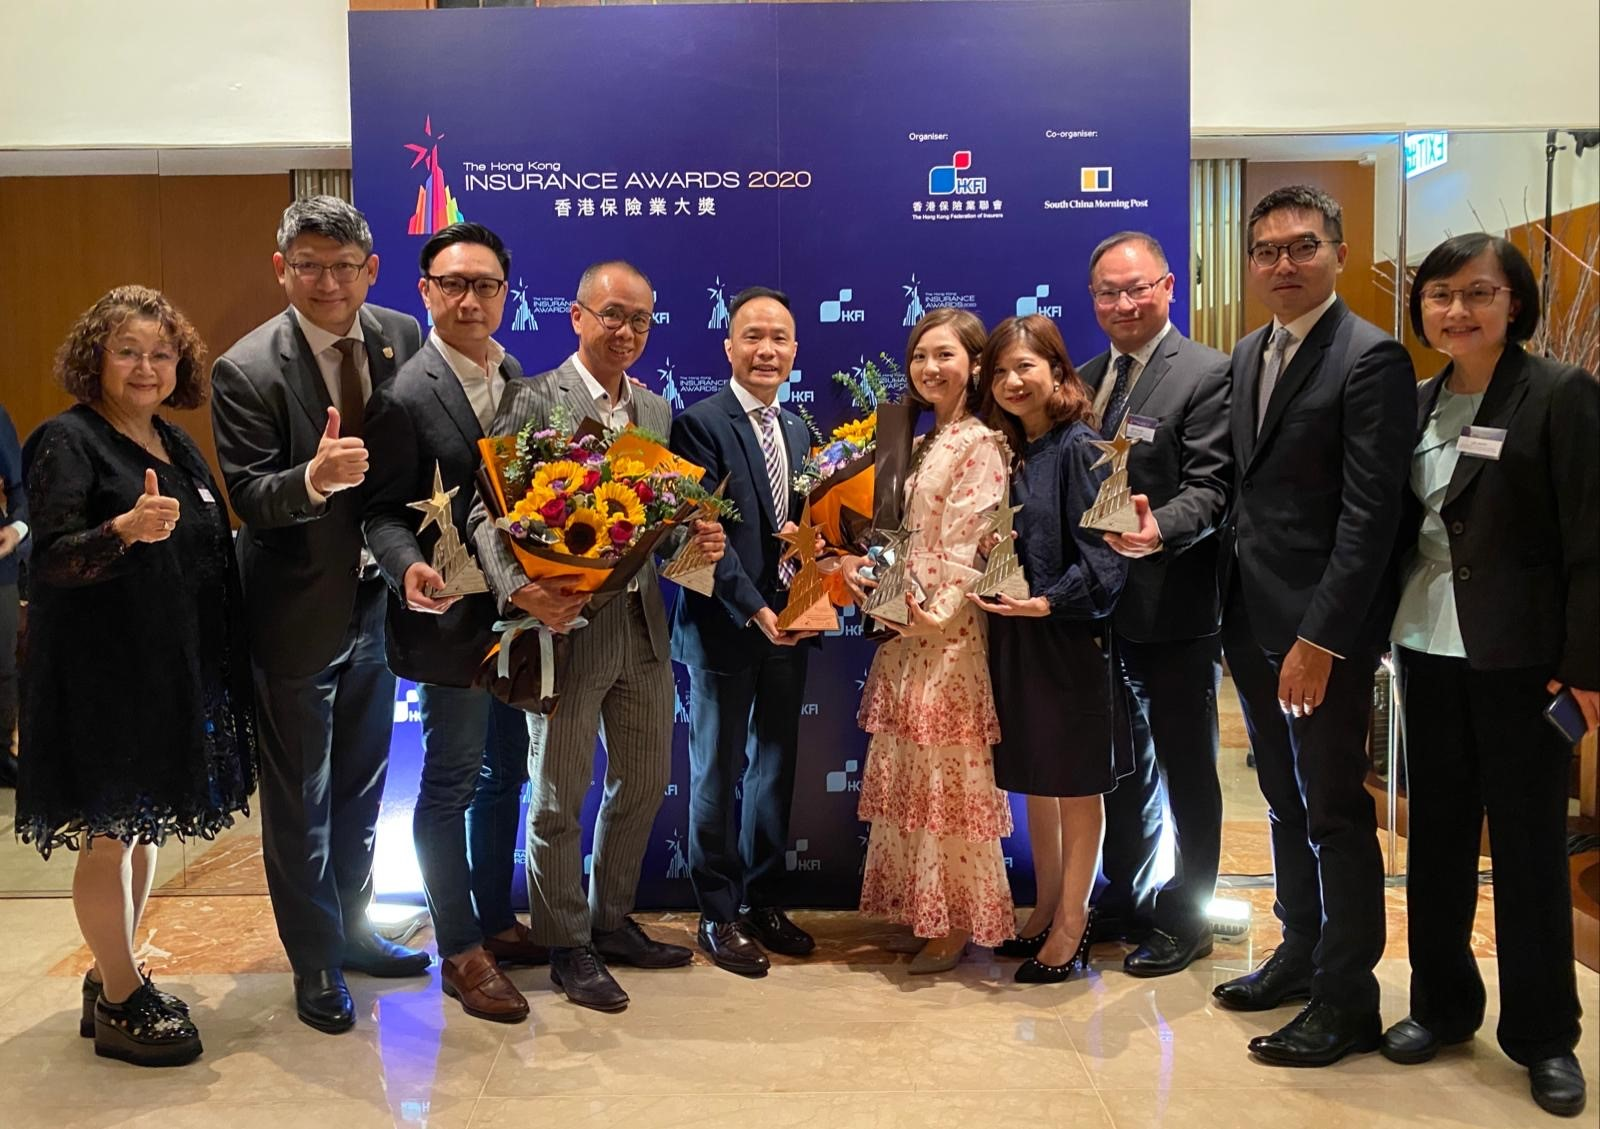 FWD wins Five Awards at Hong Kong Insurance Awards 2020 for outstanding performance and innovation